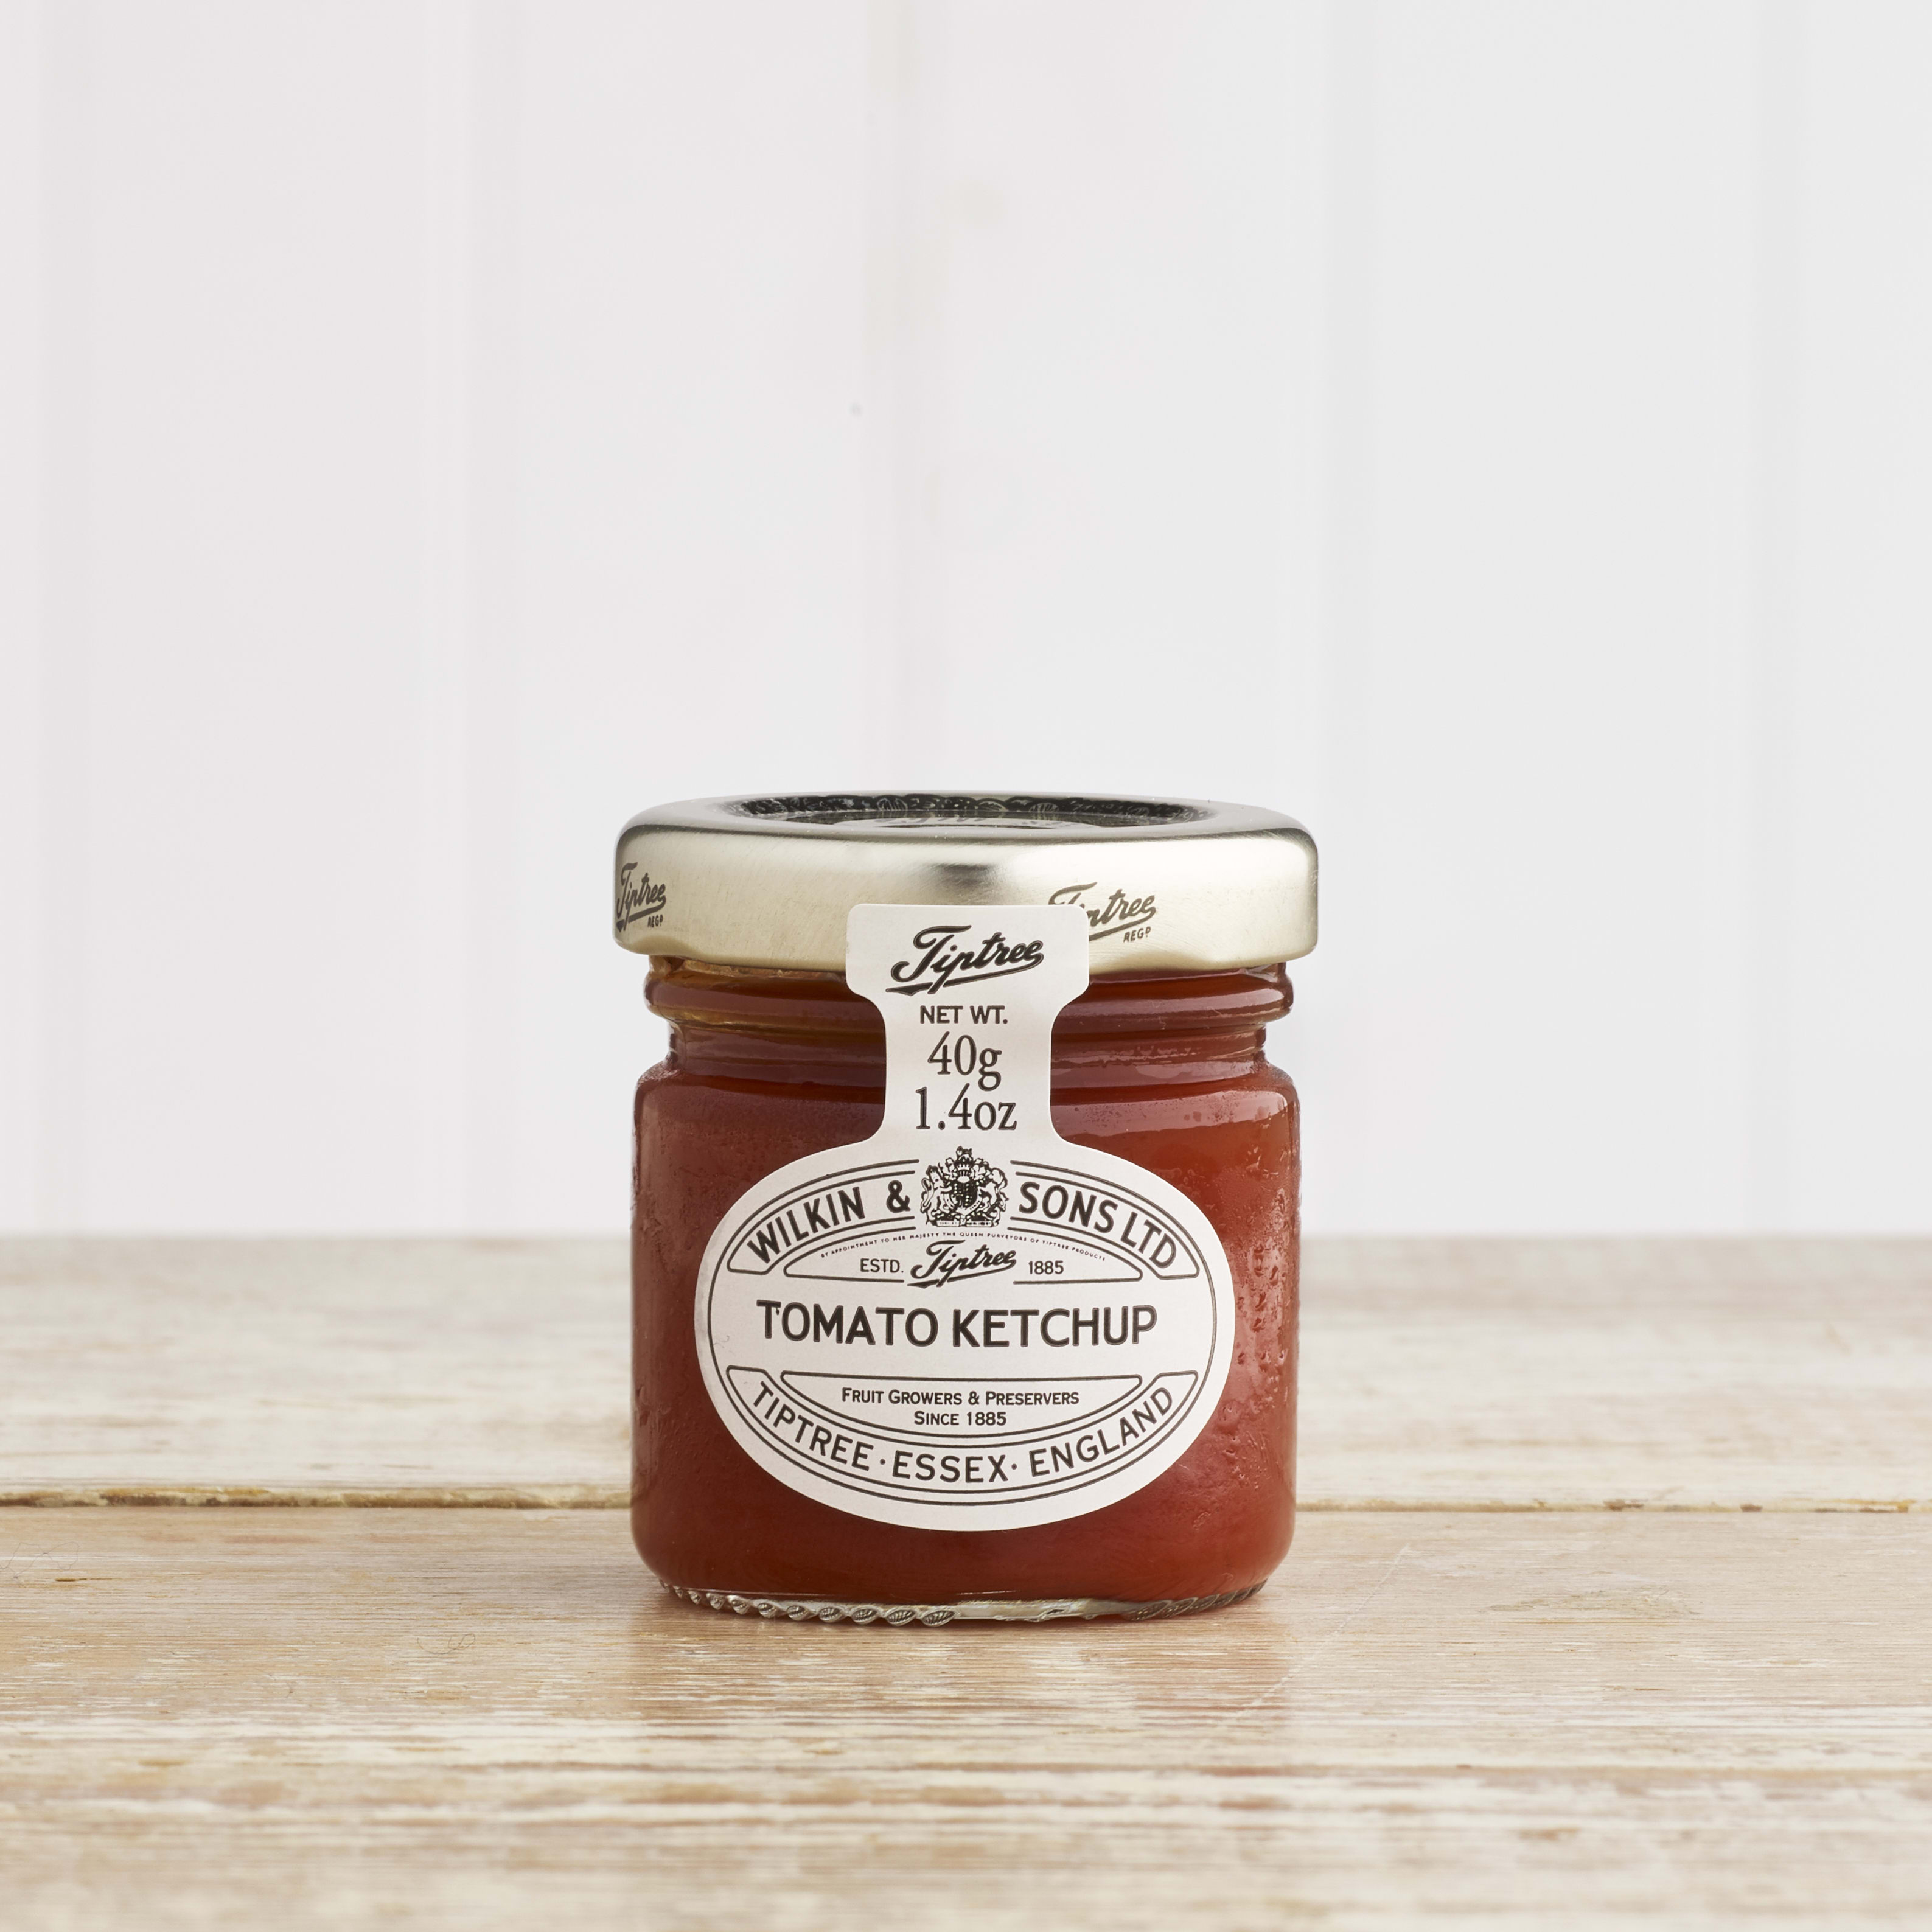 Tiptree Tomato Ketchup in Glass, 28g